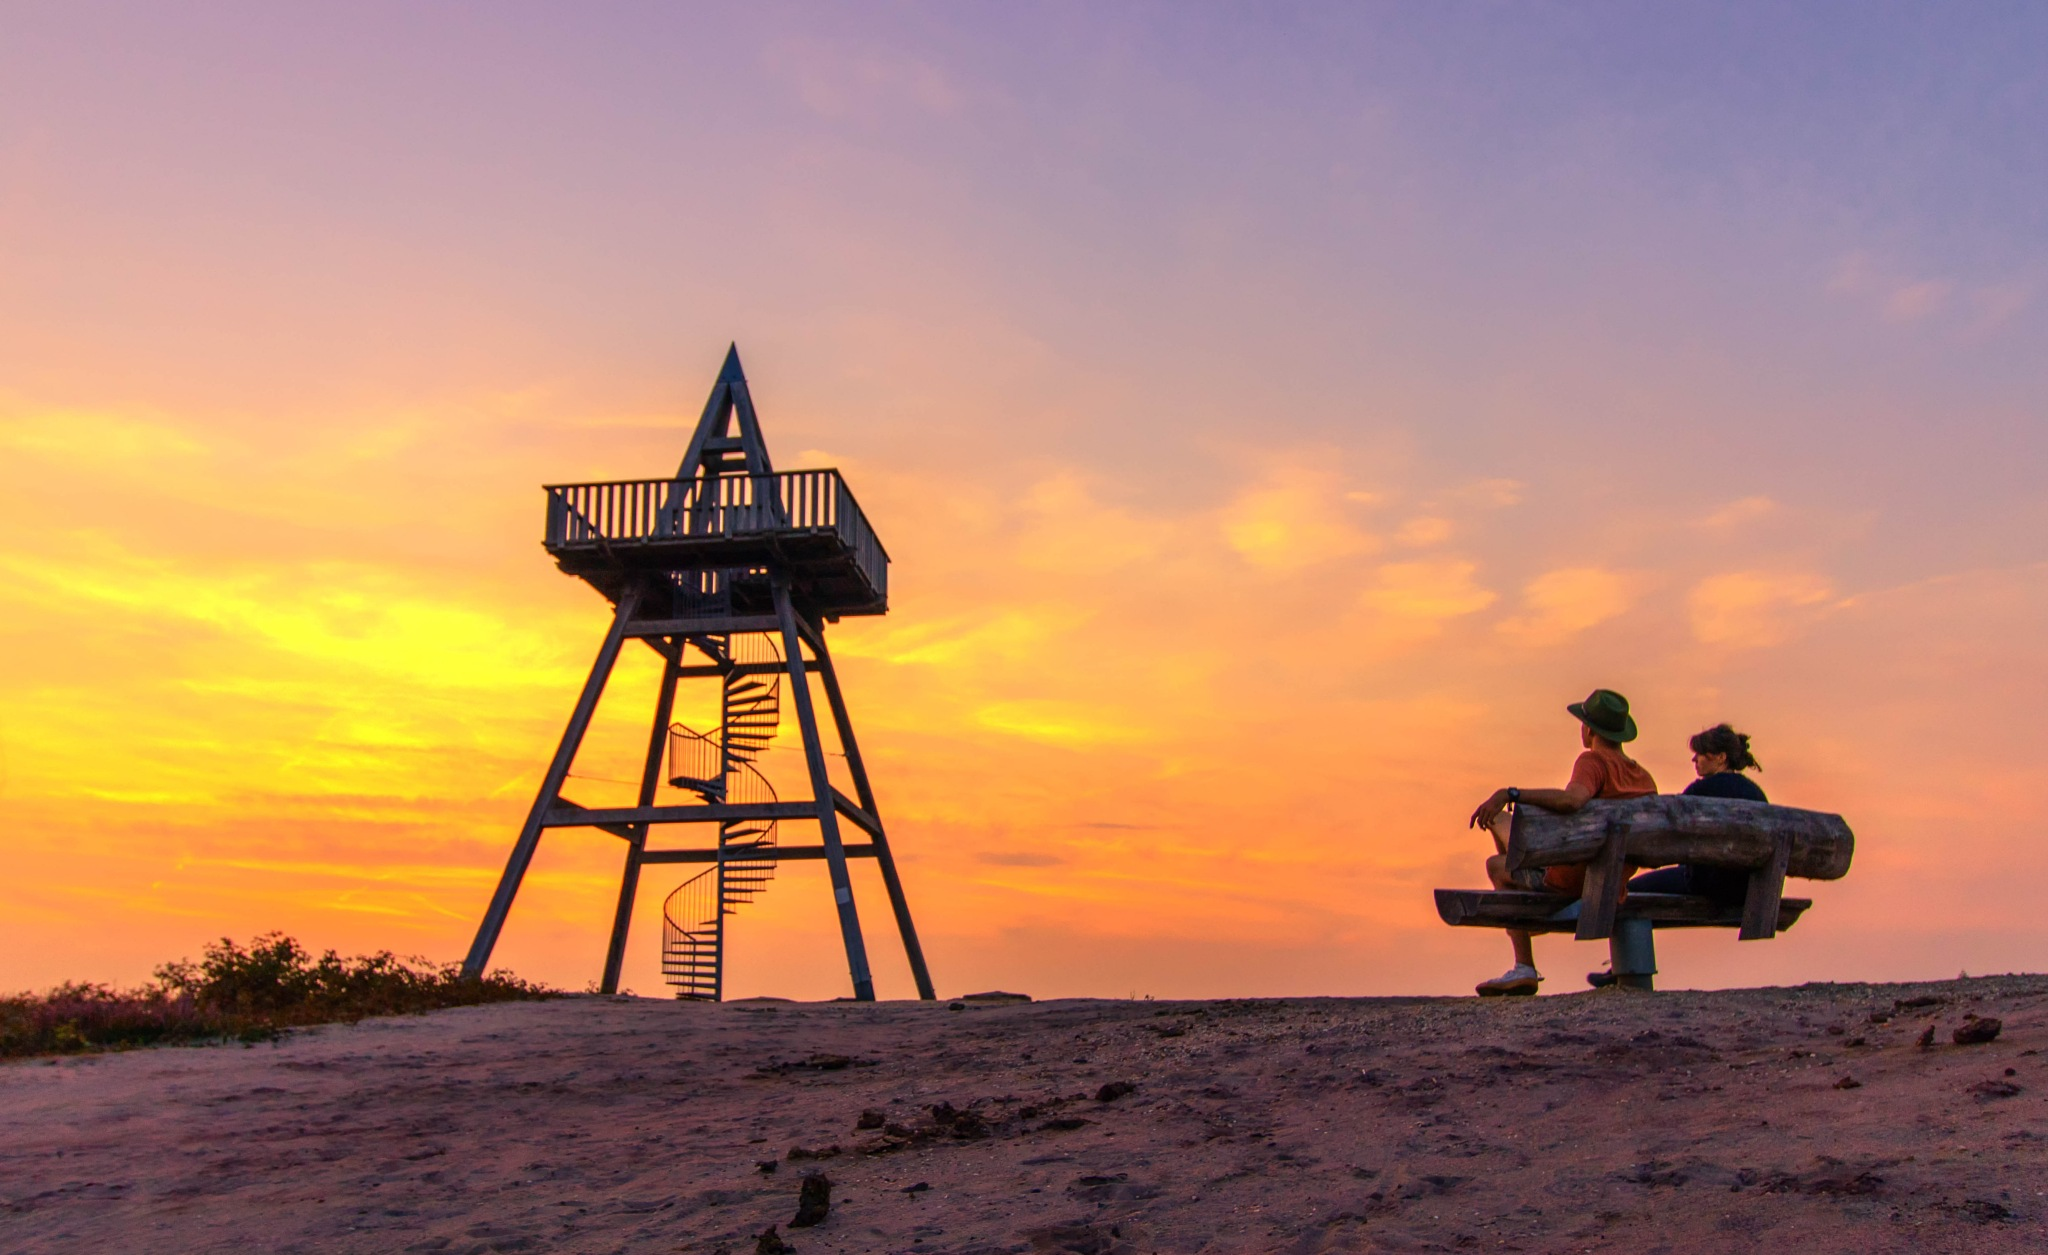 Enjoying the sunset at the observation tower by Theo Hermsen